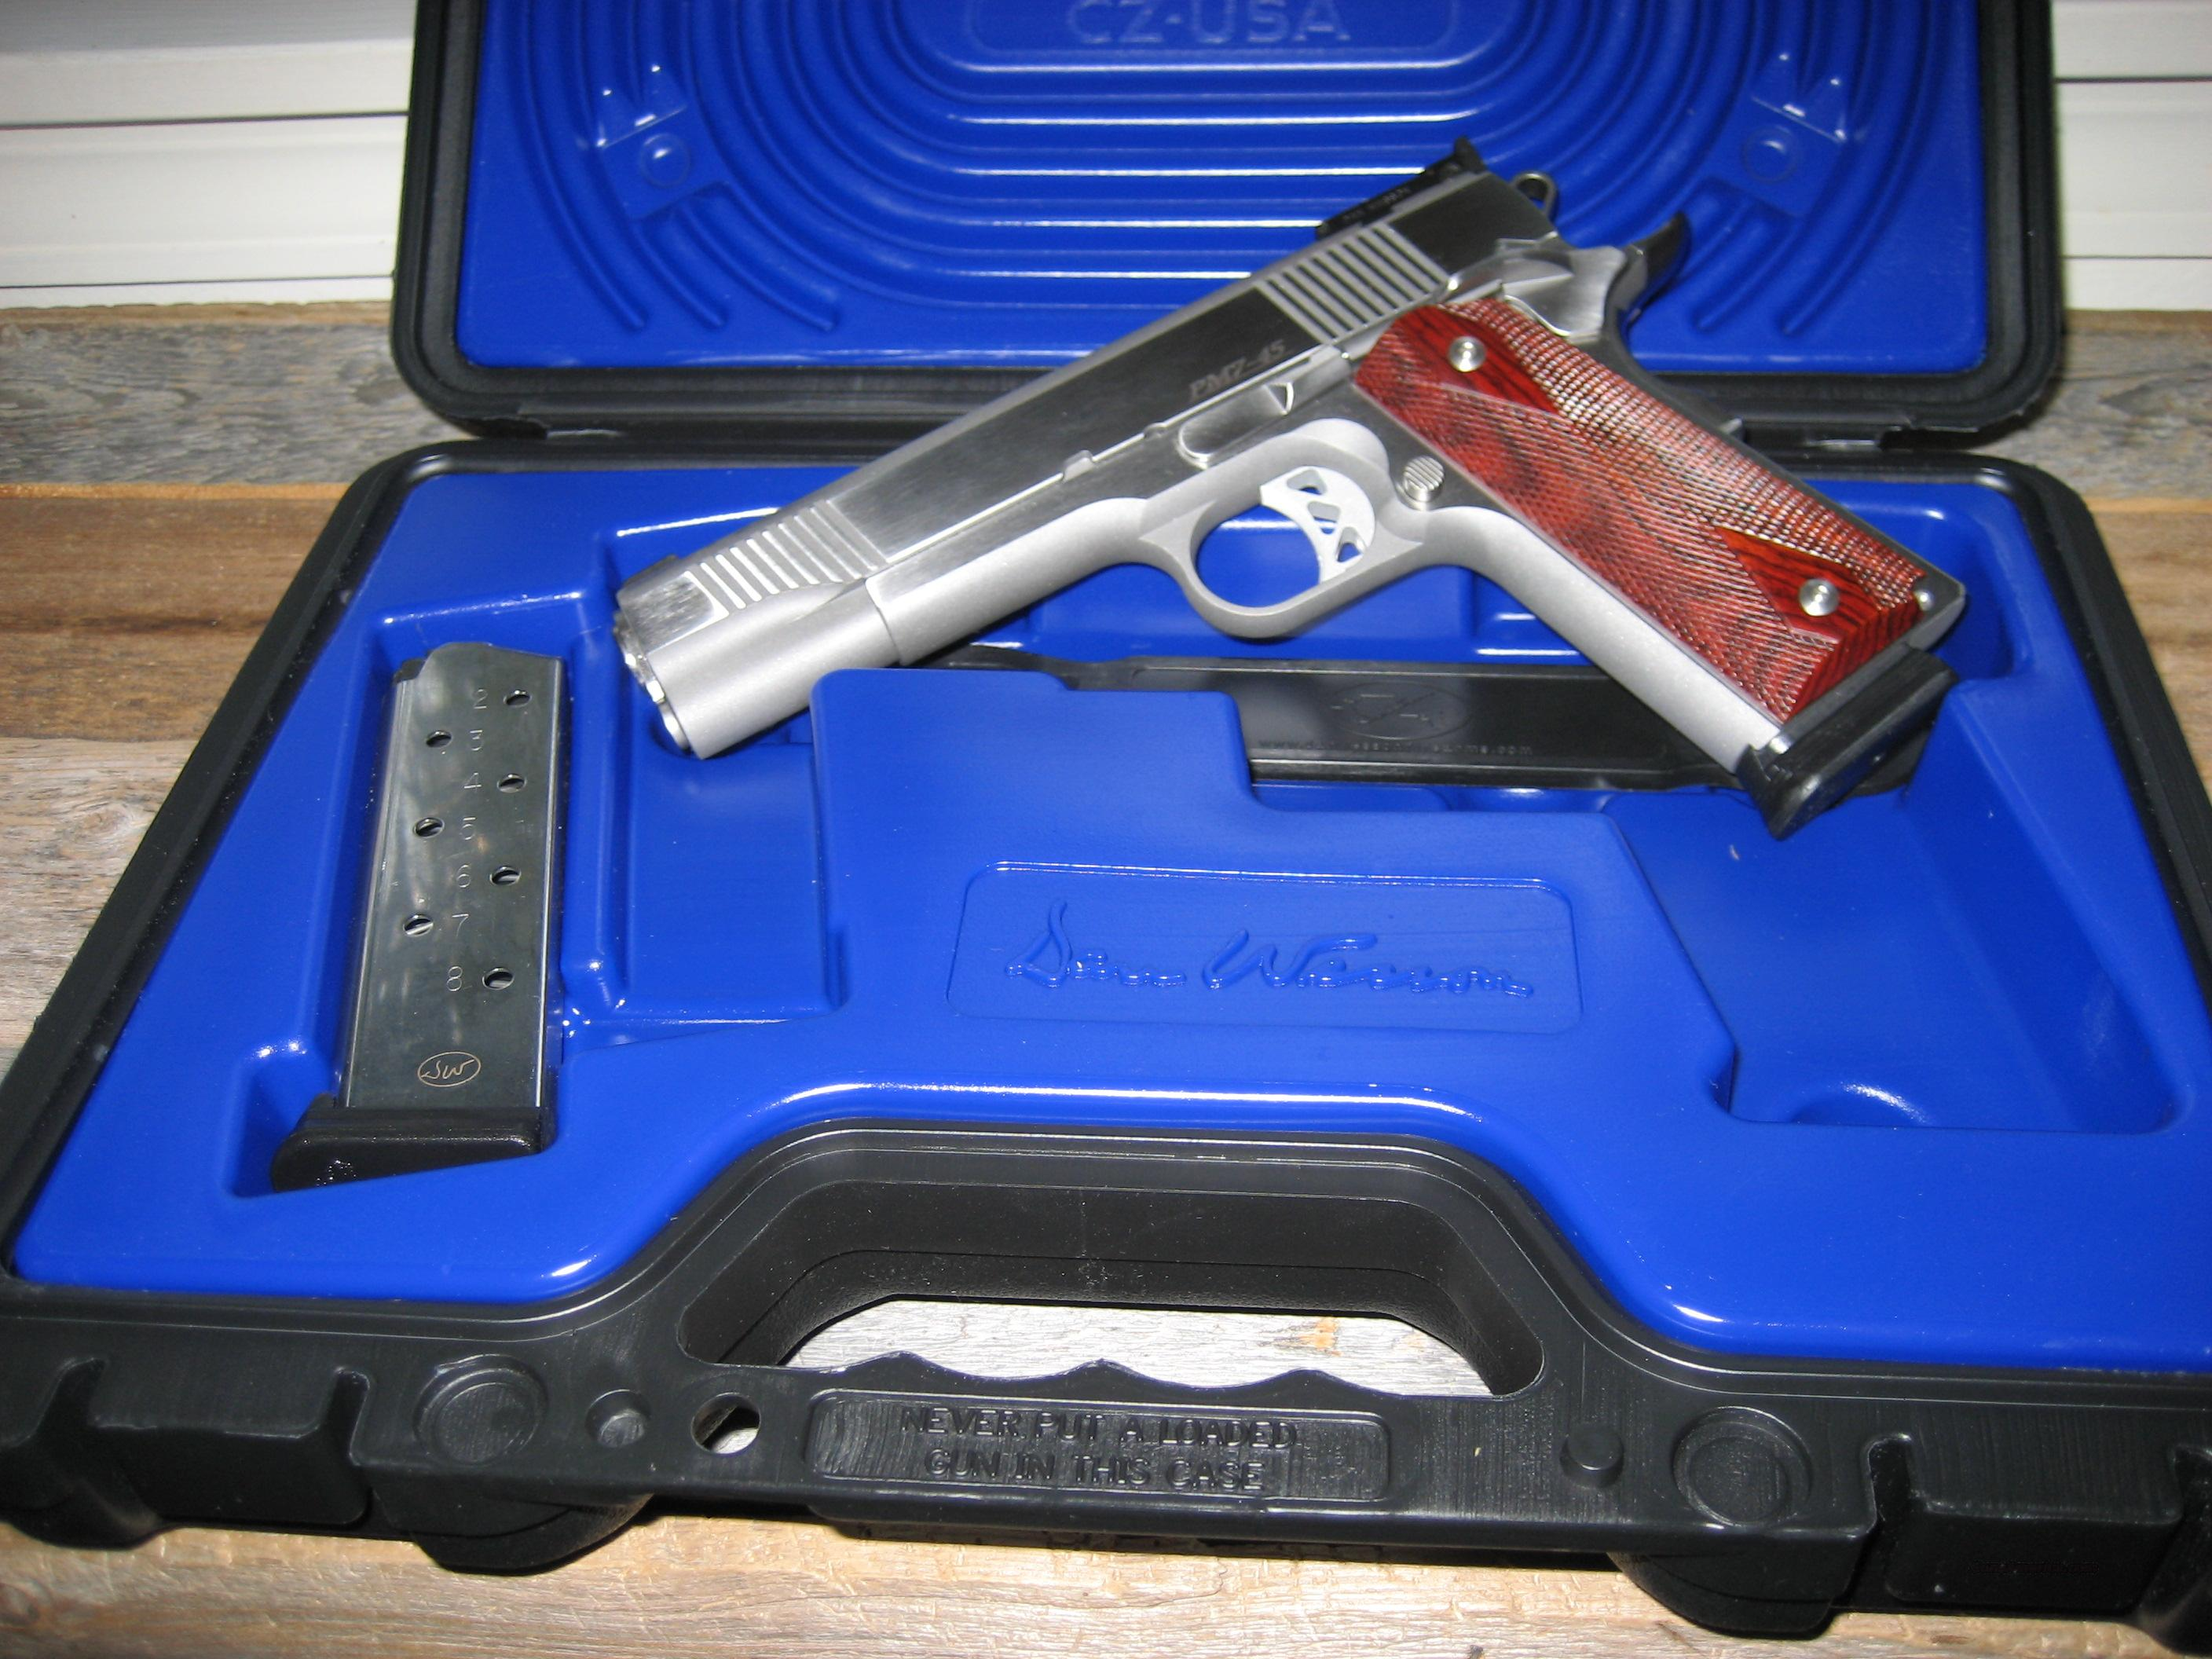 DAN WESSON PM7 45 ACP  Guns > Pistols > 1911 Pistol Copies (non-Colt)